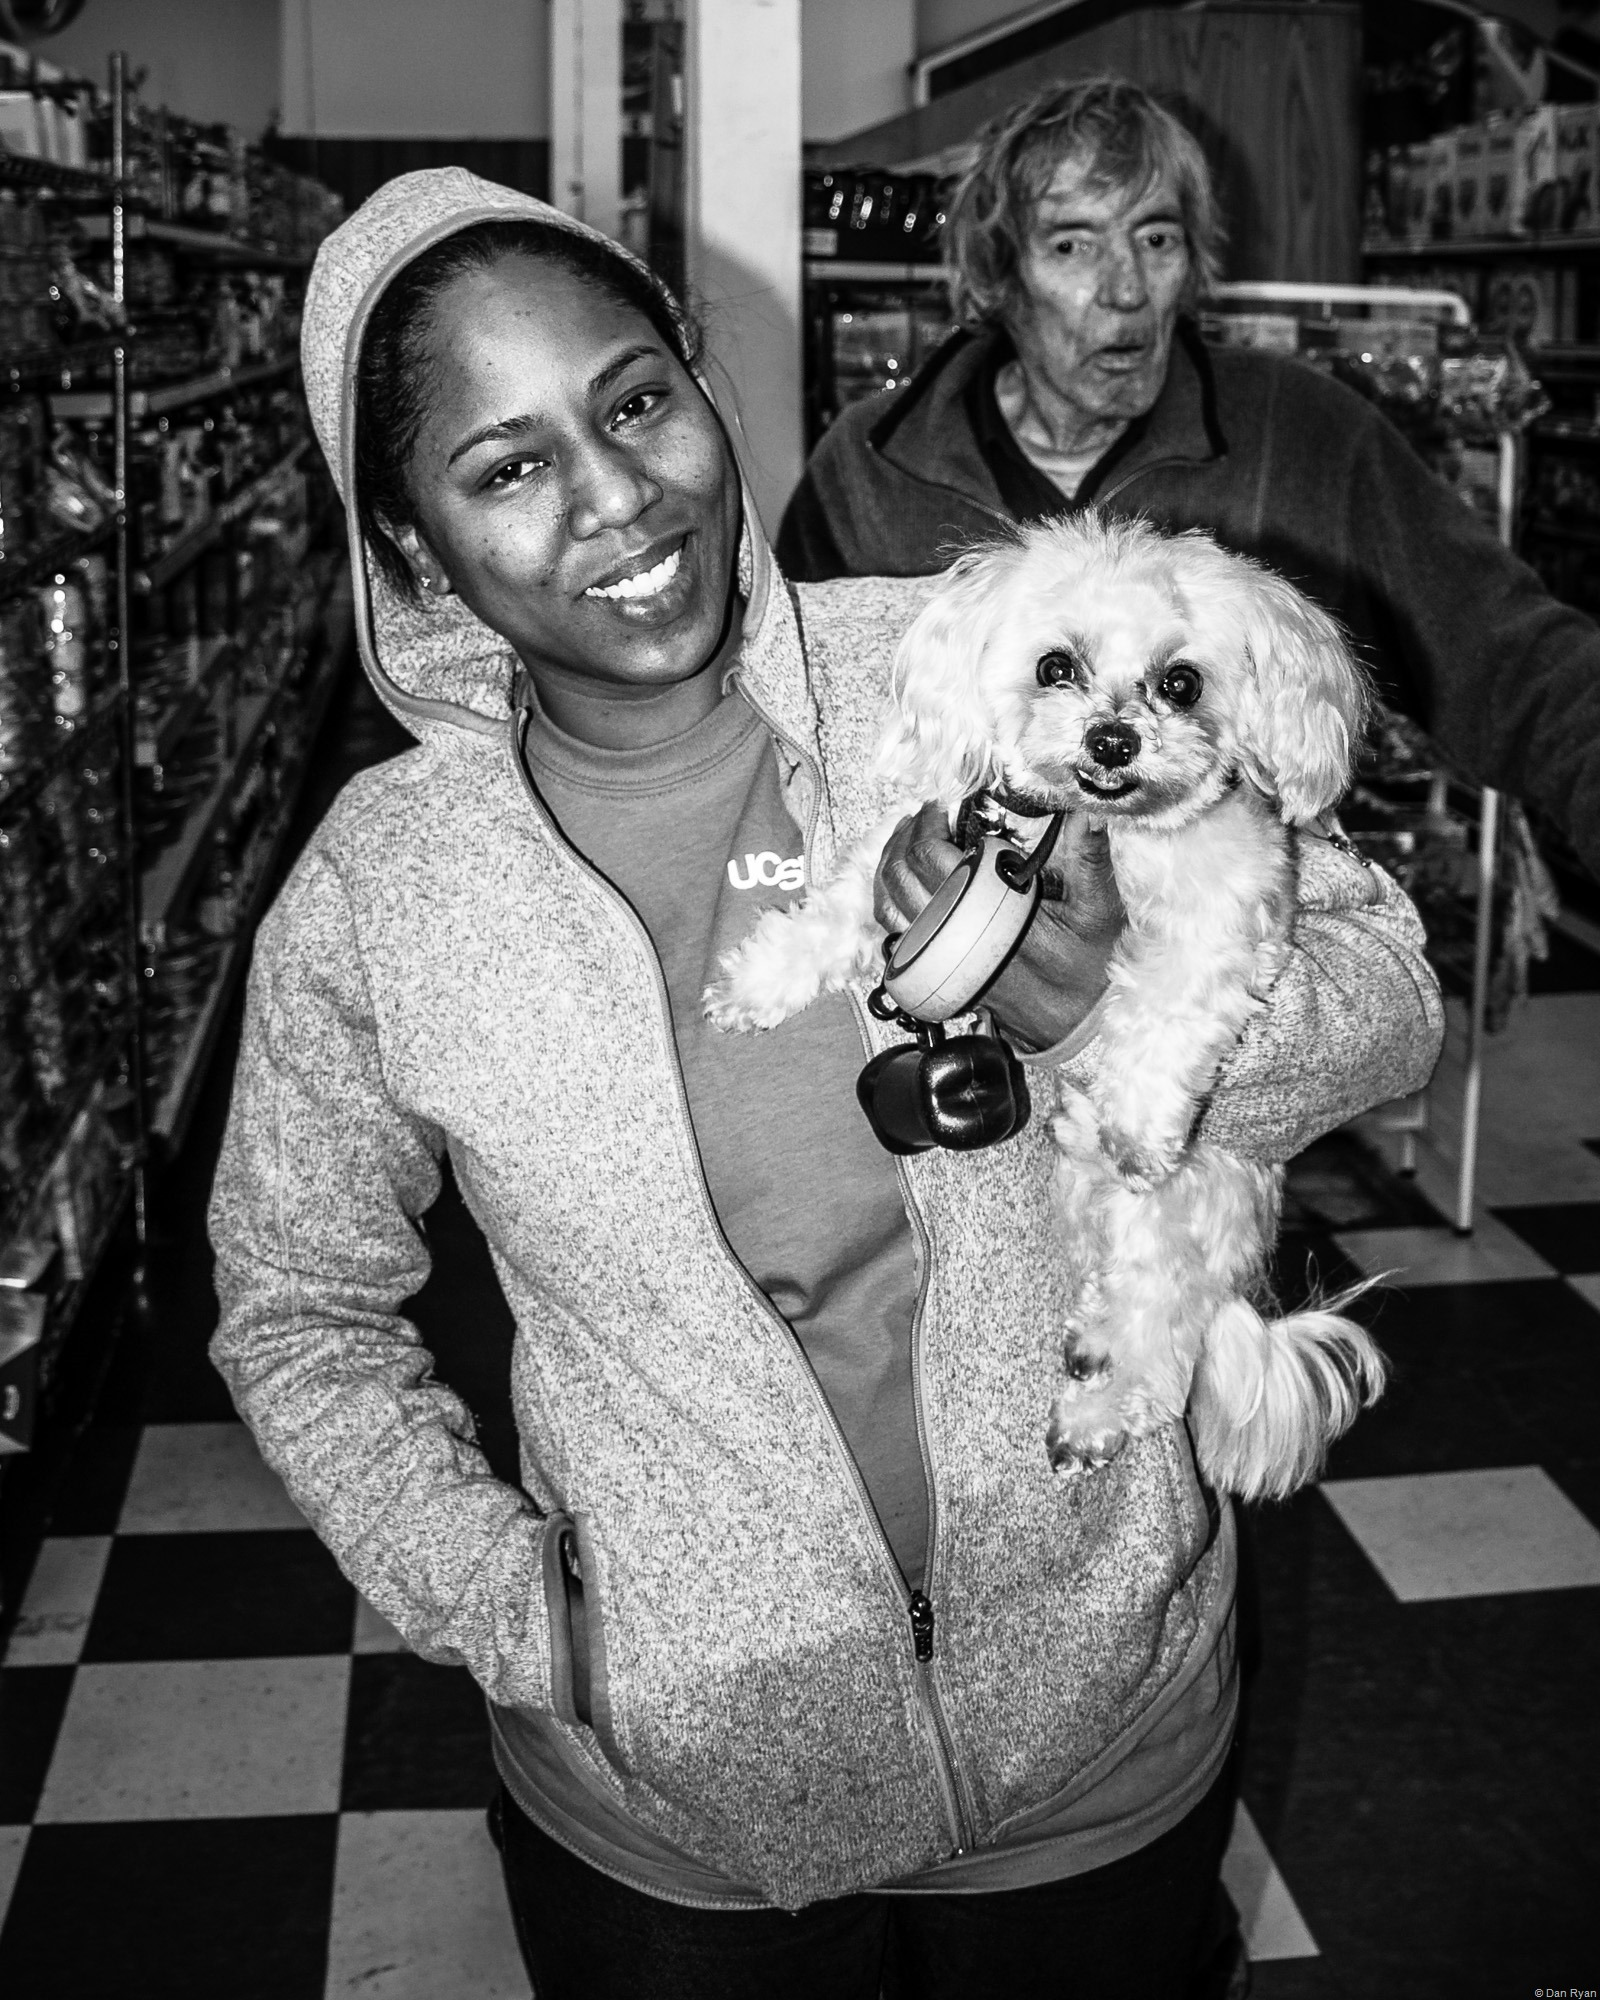 African American Woman and Dog